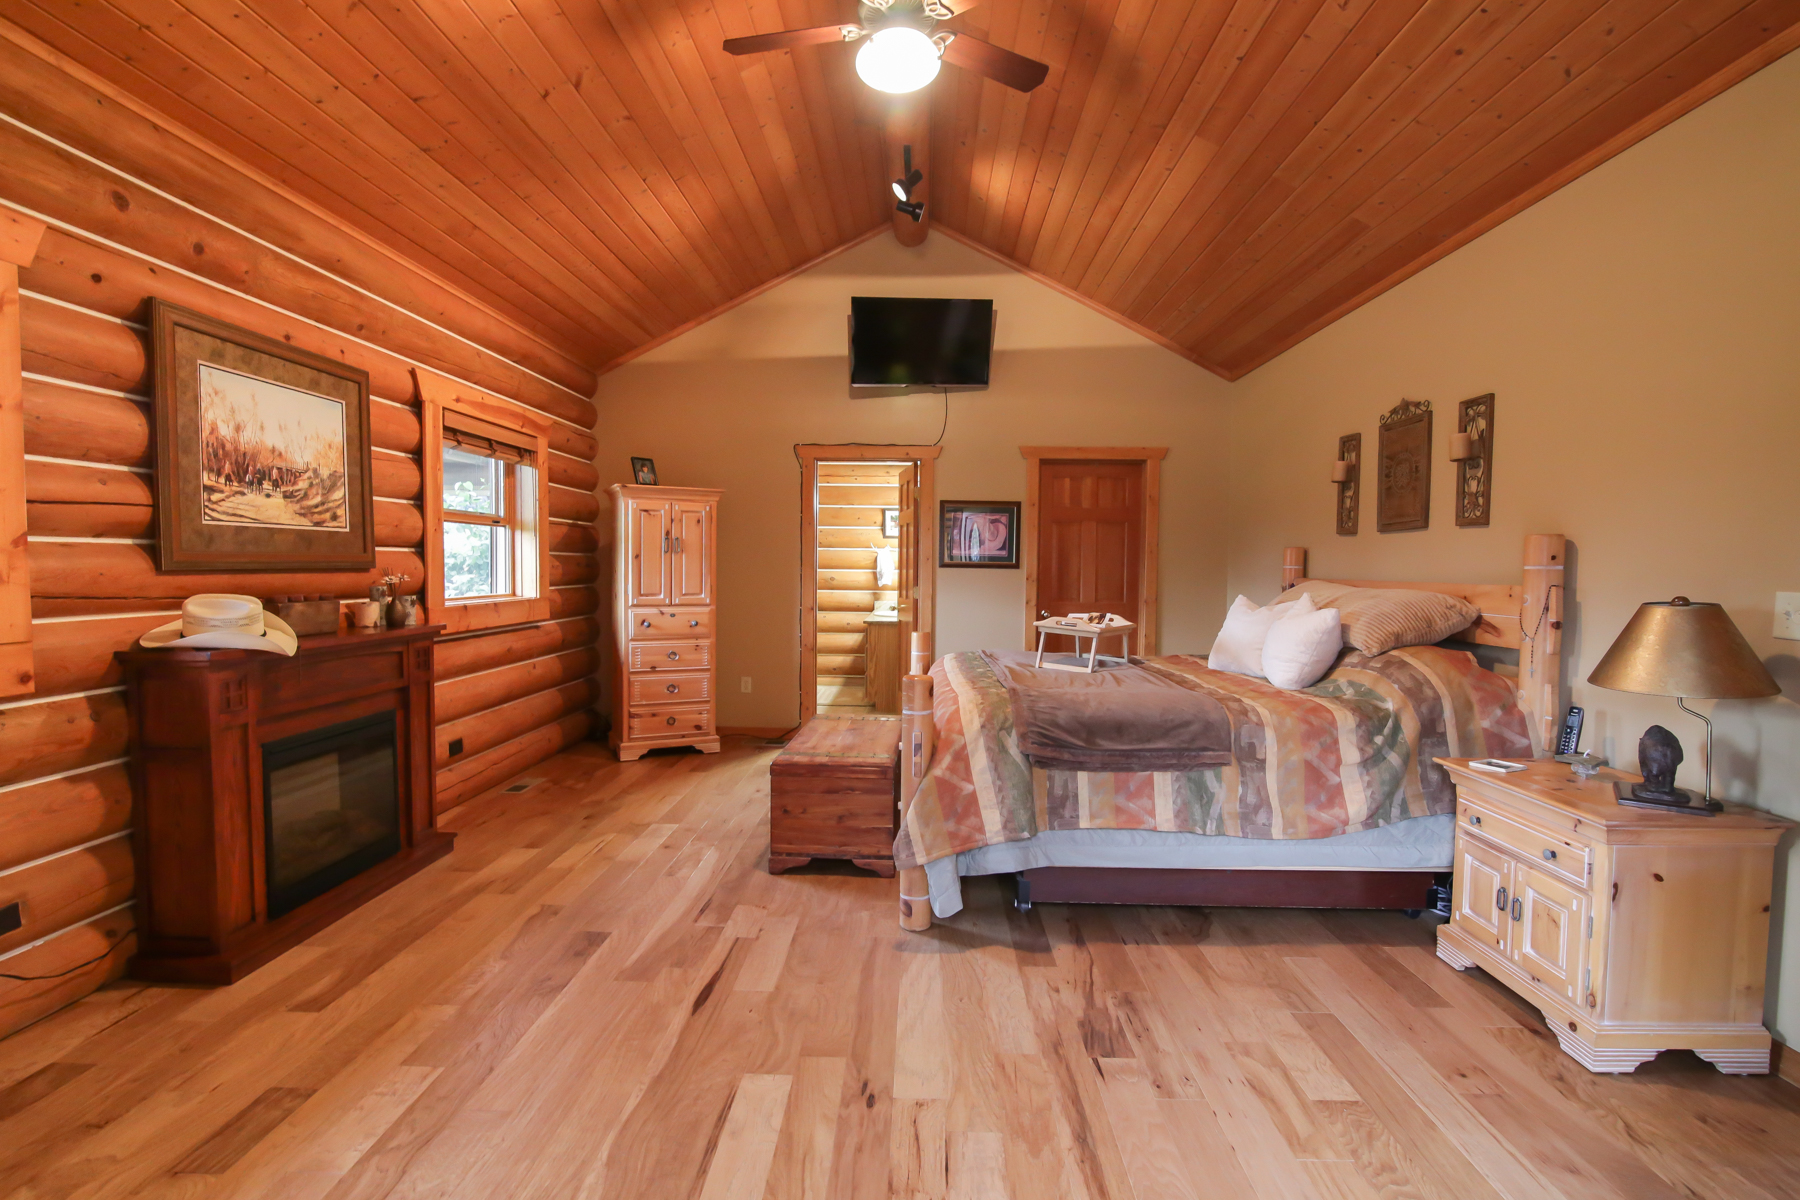 Additional photo for property listing at 20925 Spotted Fawn Rd , Huson, MT 59846 20925  Spotted Fawn Rd Huson, Montana 59846 United States